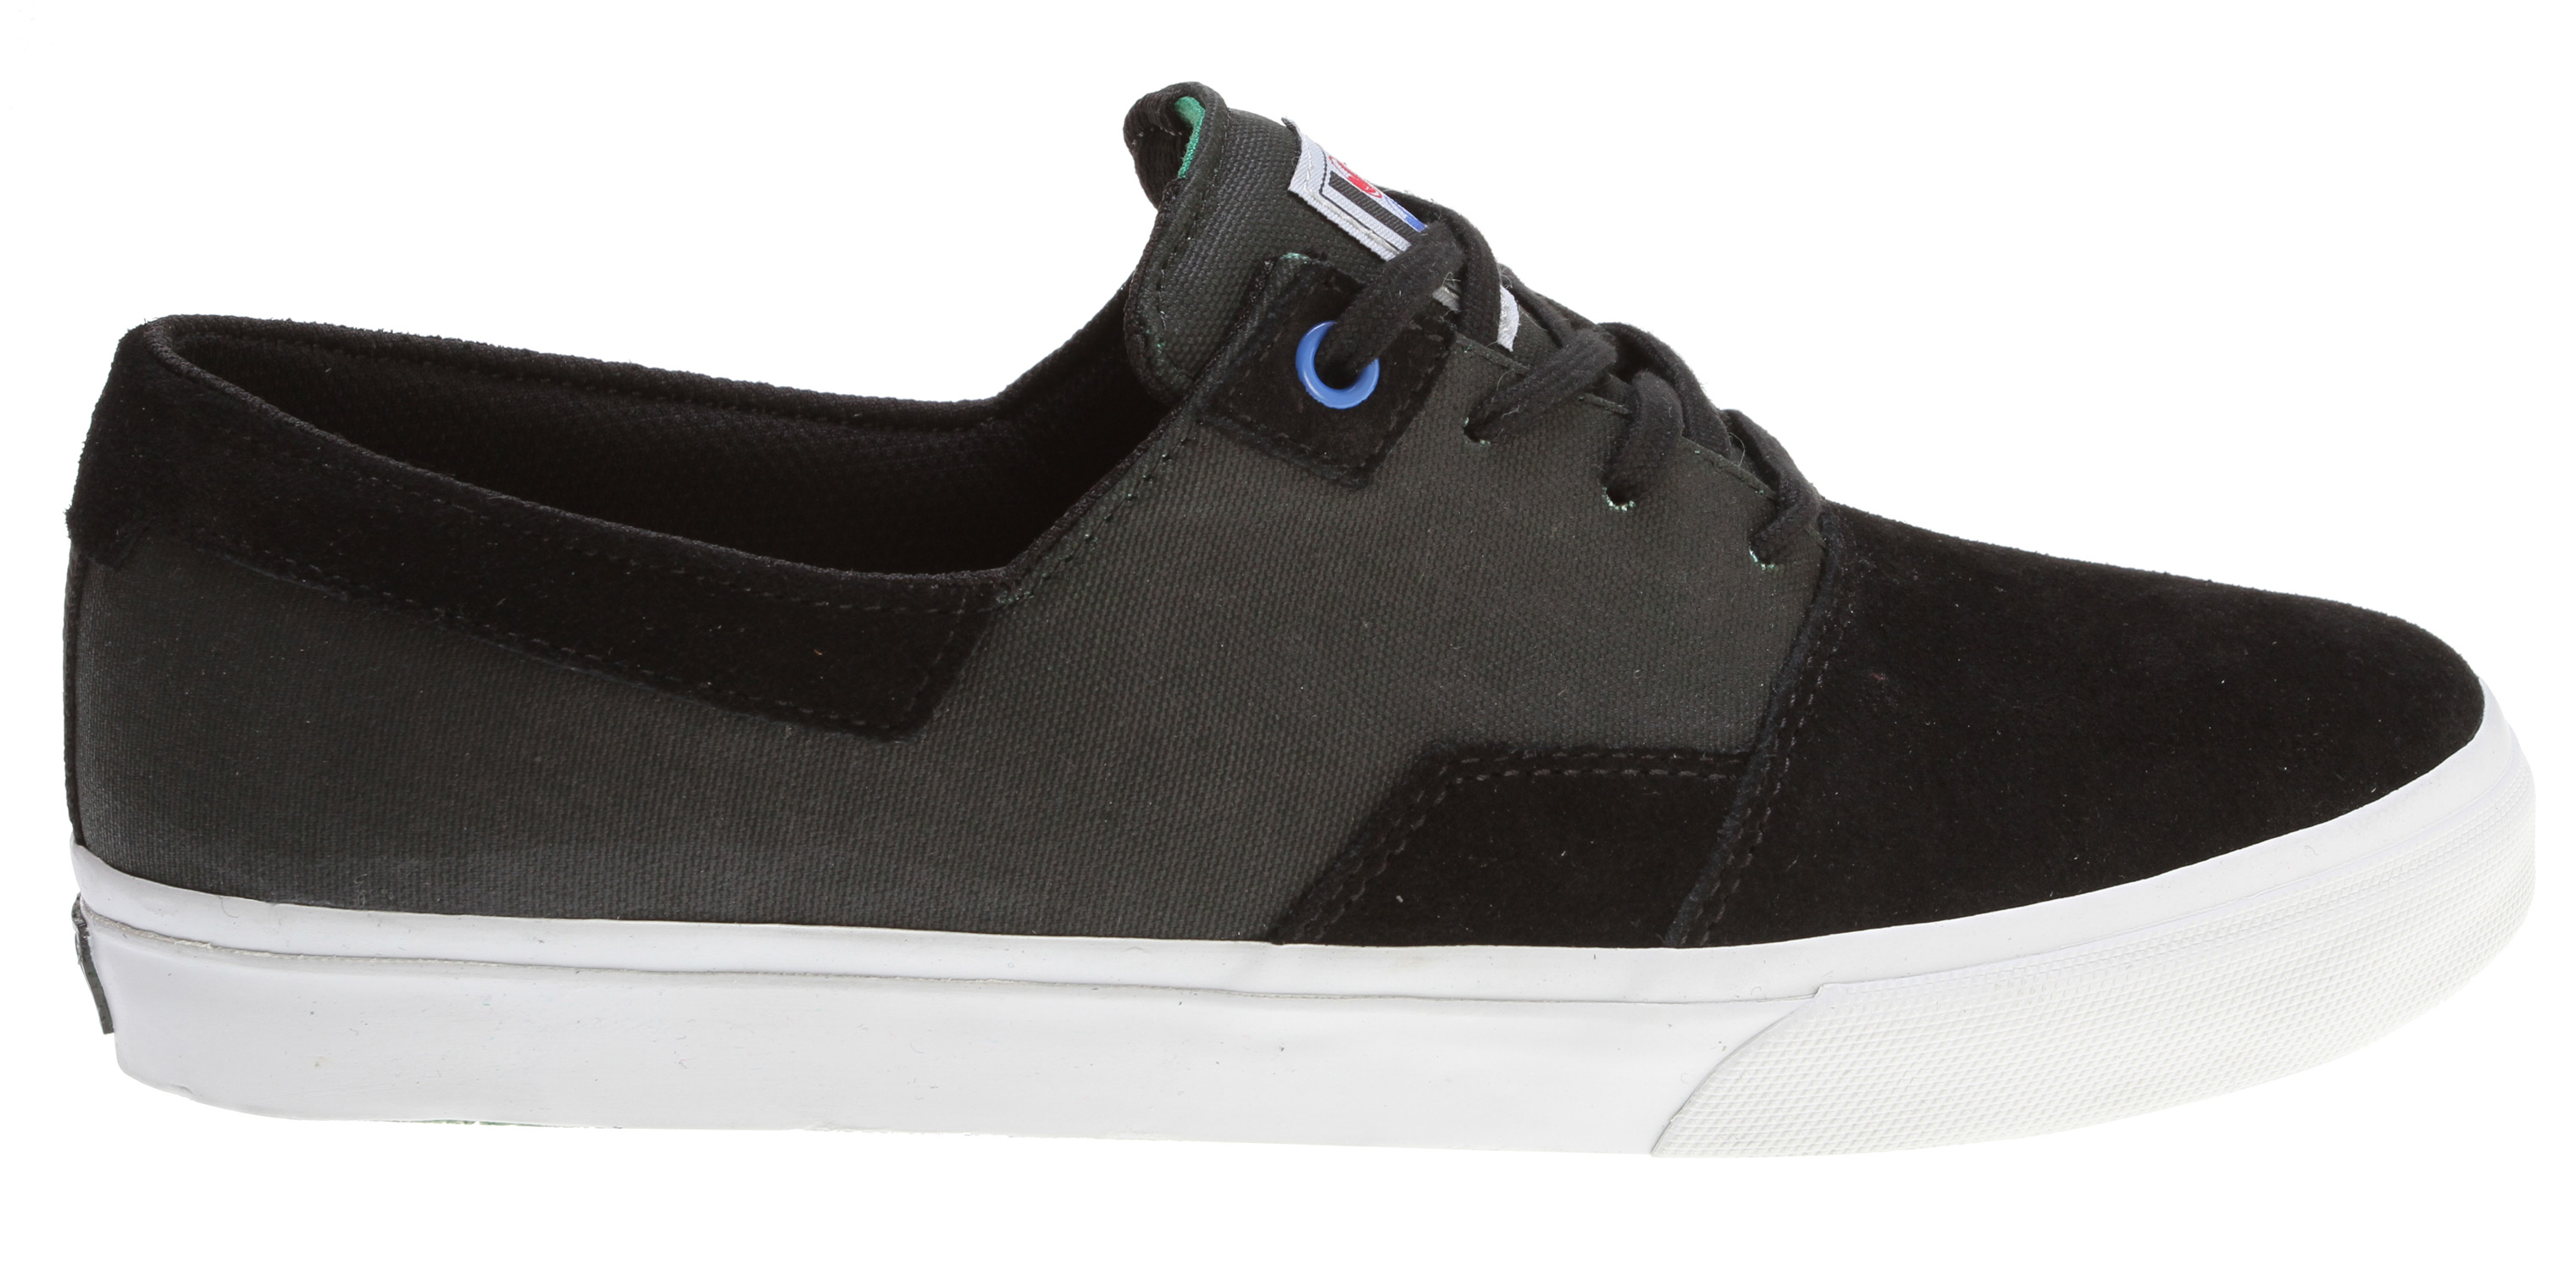 Skateboard Key Features of the DVS Torey 2 Skate Shoes: Suede/Canvas upper material Custom cotton laces Custom artwork Molded EVA footbed Non-slip Vulcanized outsole Highly flexible lasting board - $44.95